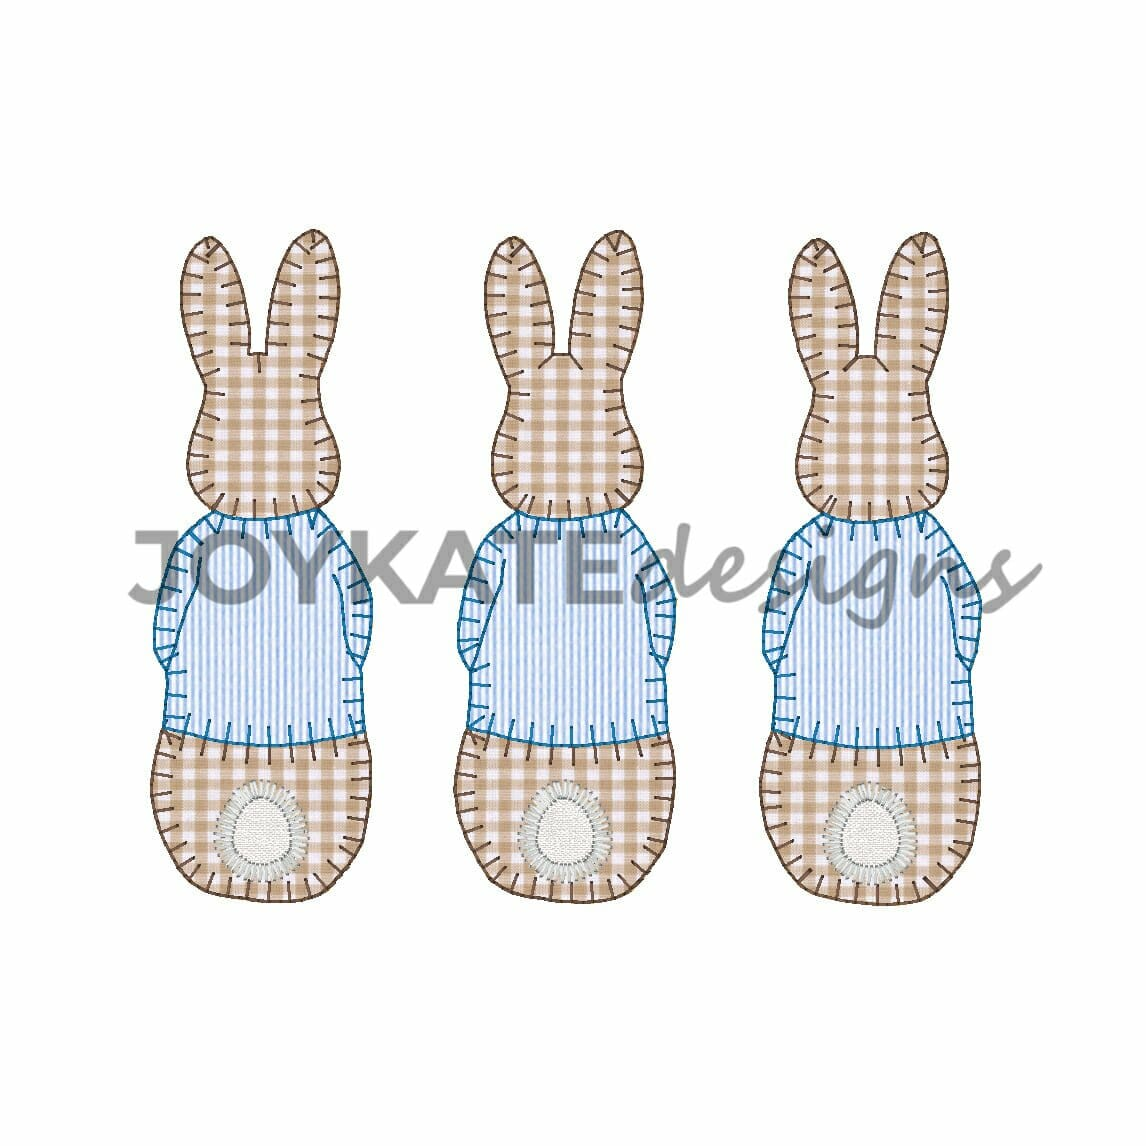 Boy bunny rabbit with jacket applique trio embroidery for Net designs